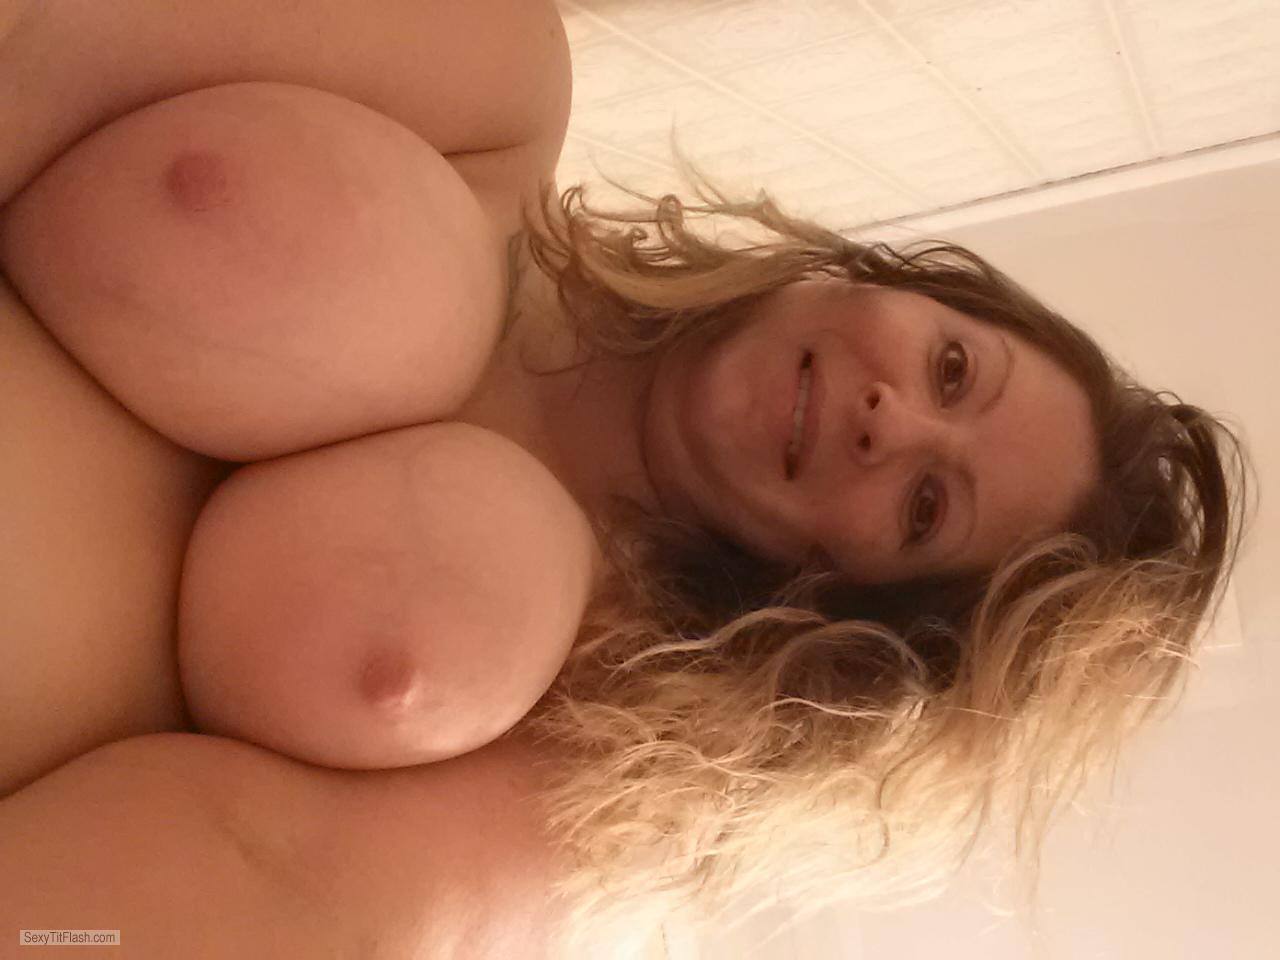 Tit Flash: My Very Big Tits (Selfie) - Topless Jenny Jenny from United States